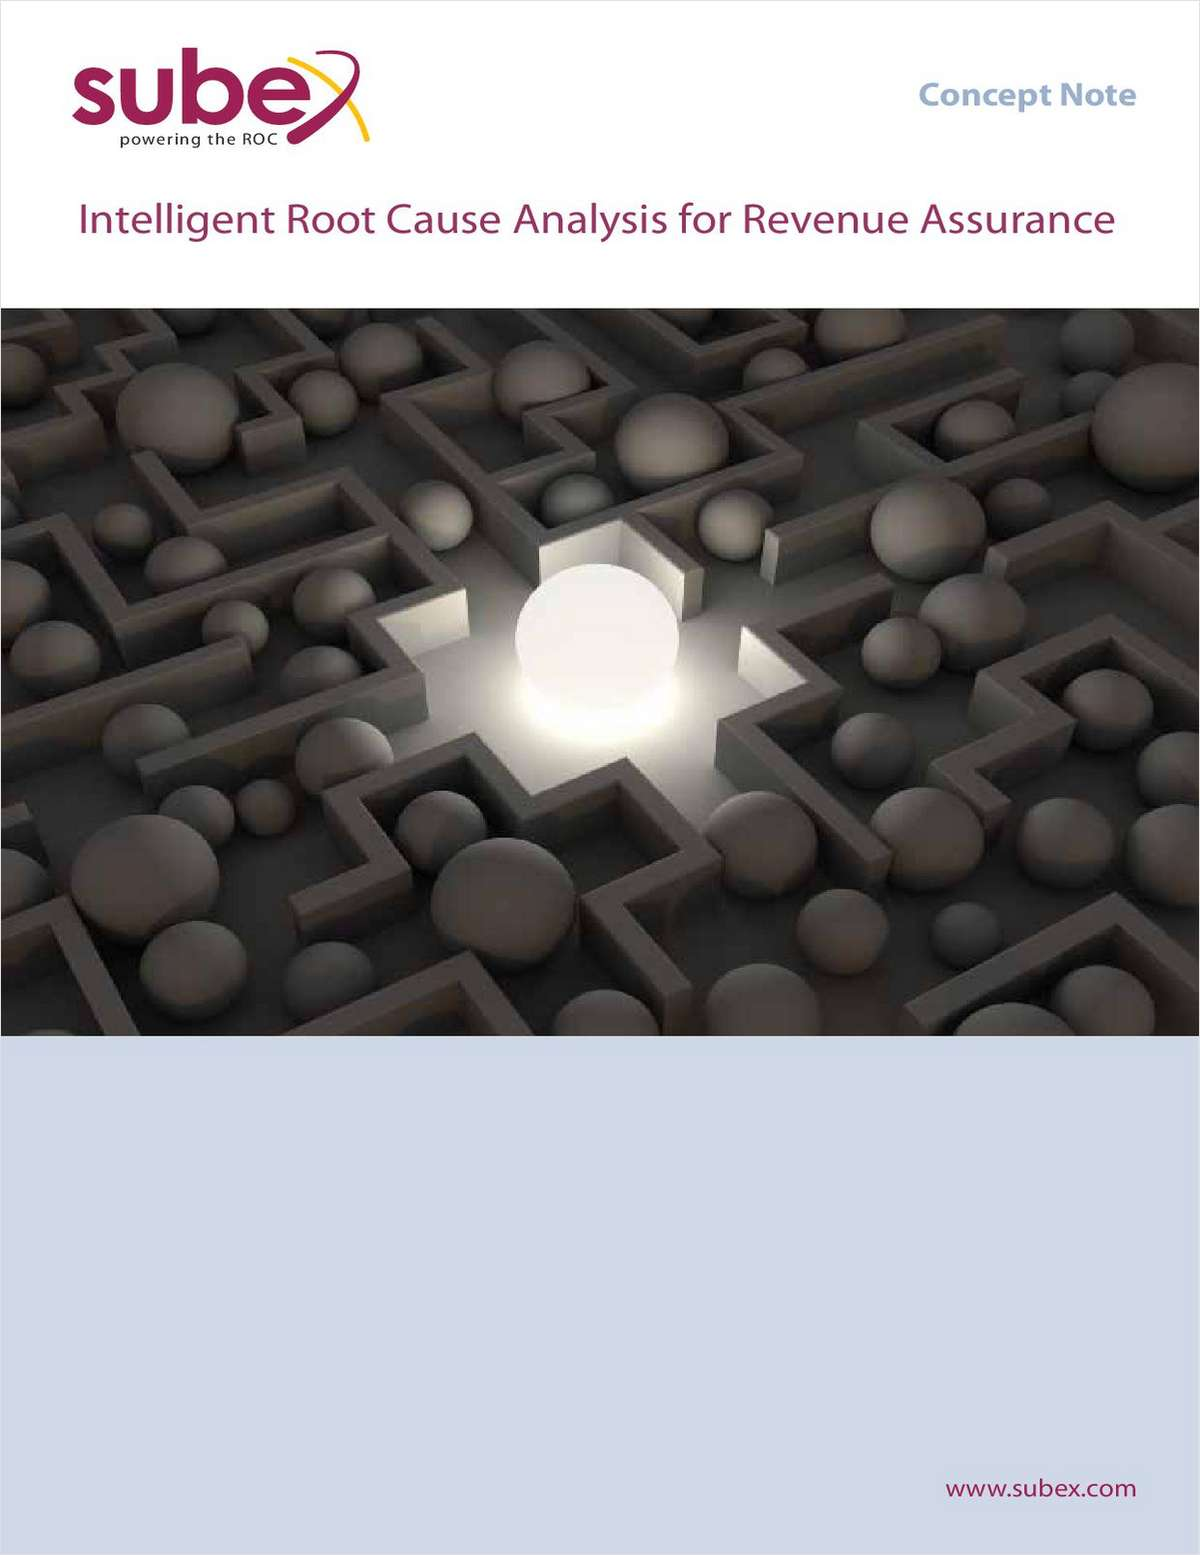 Intelligent Root Cause Analysis for Revenue Assurance